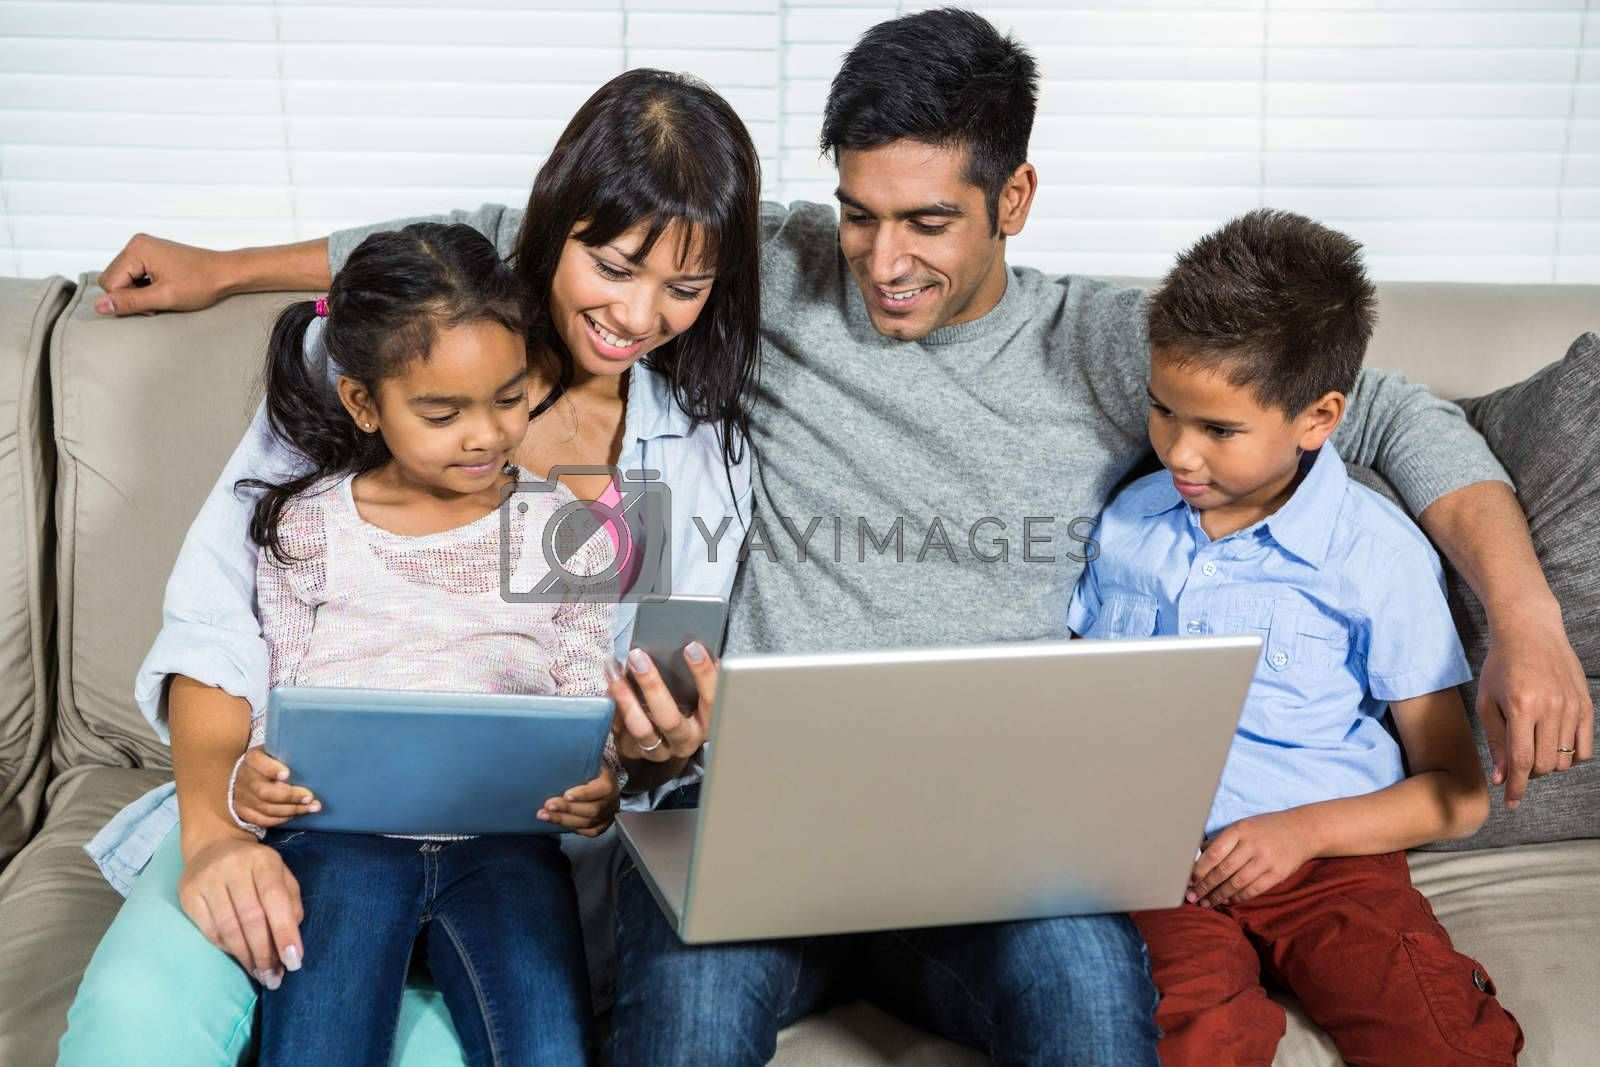 Smiling family on the sofa using technology